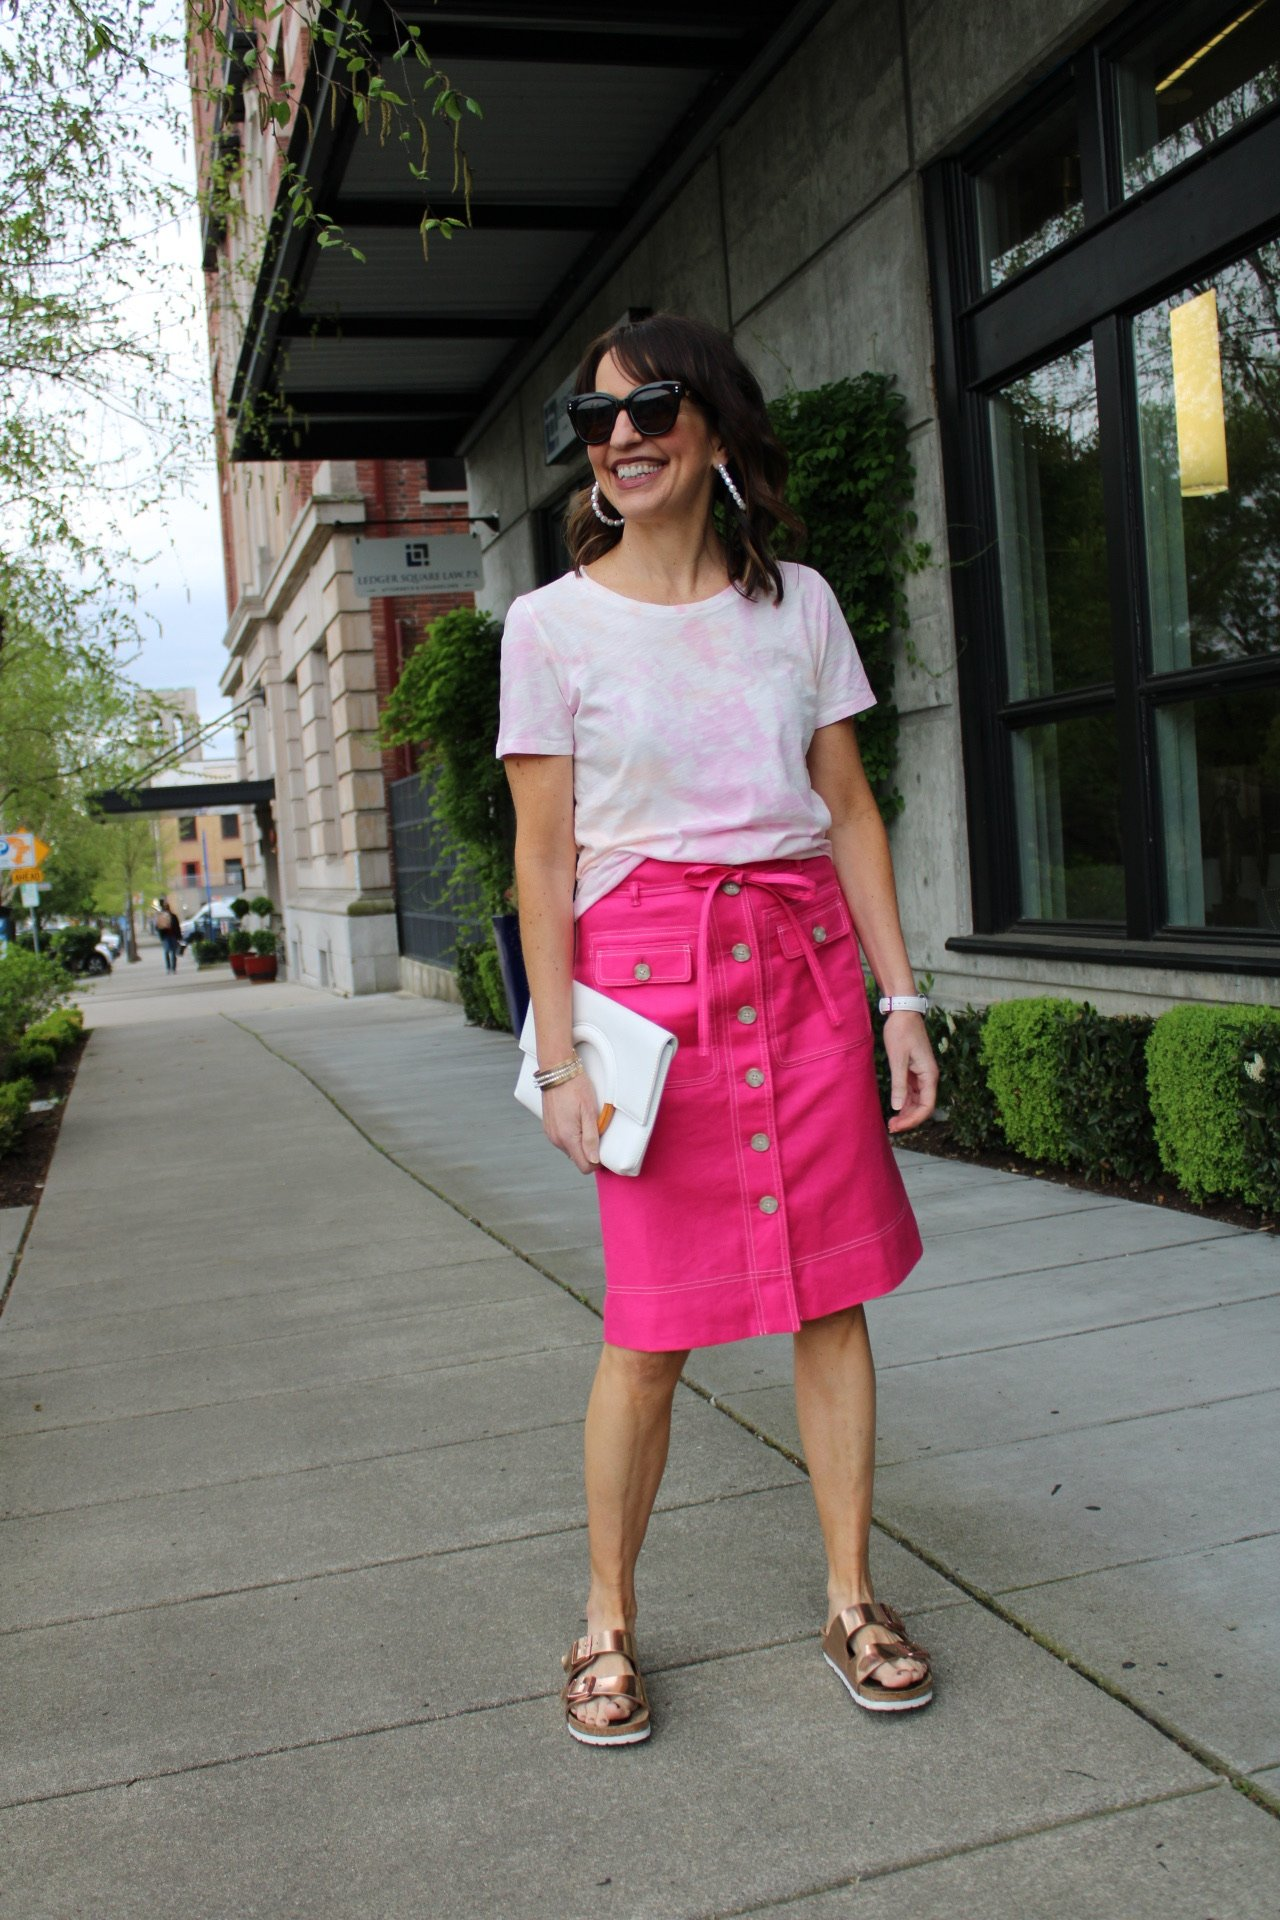 jcrew tie dye tee with pink button front knee length skirt and rose gold birkenstock sandals